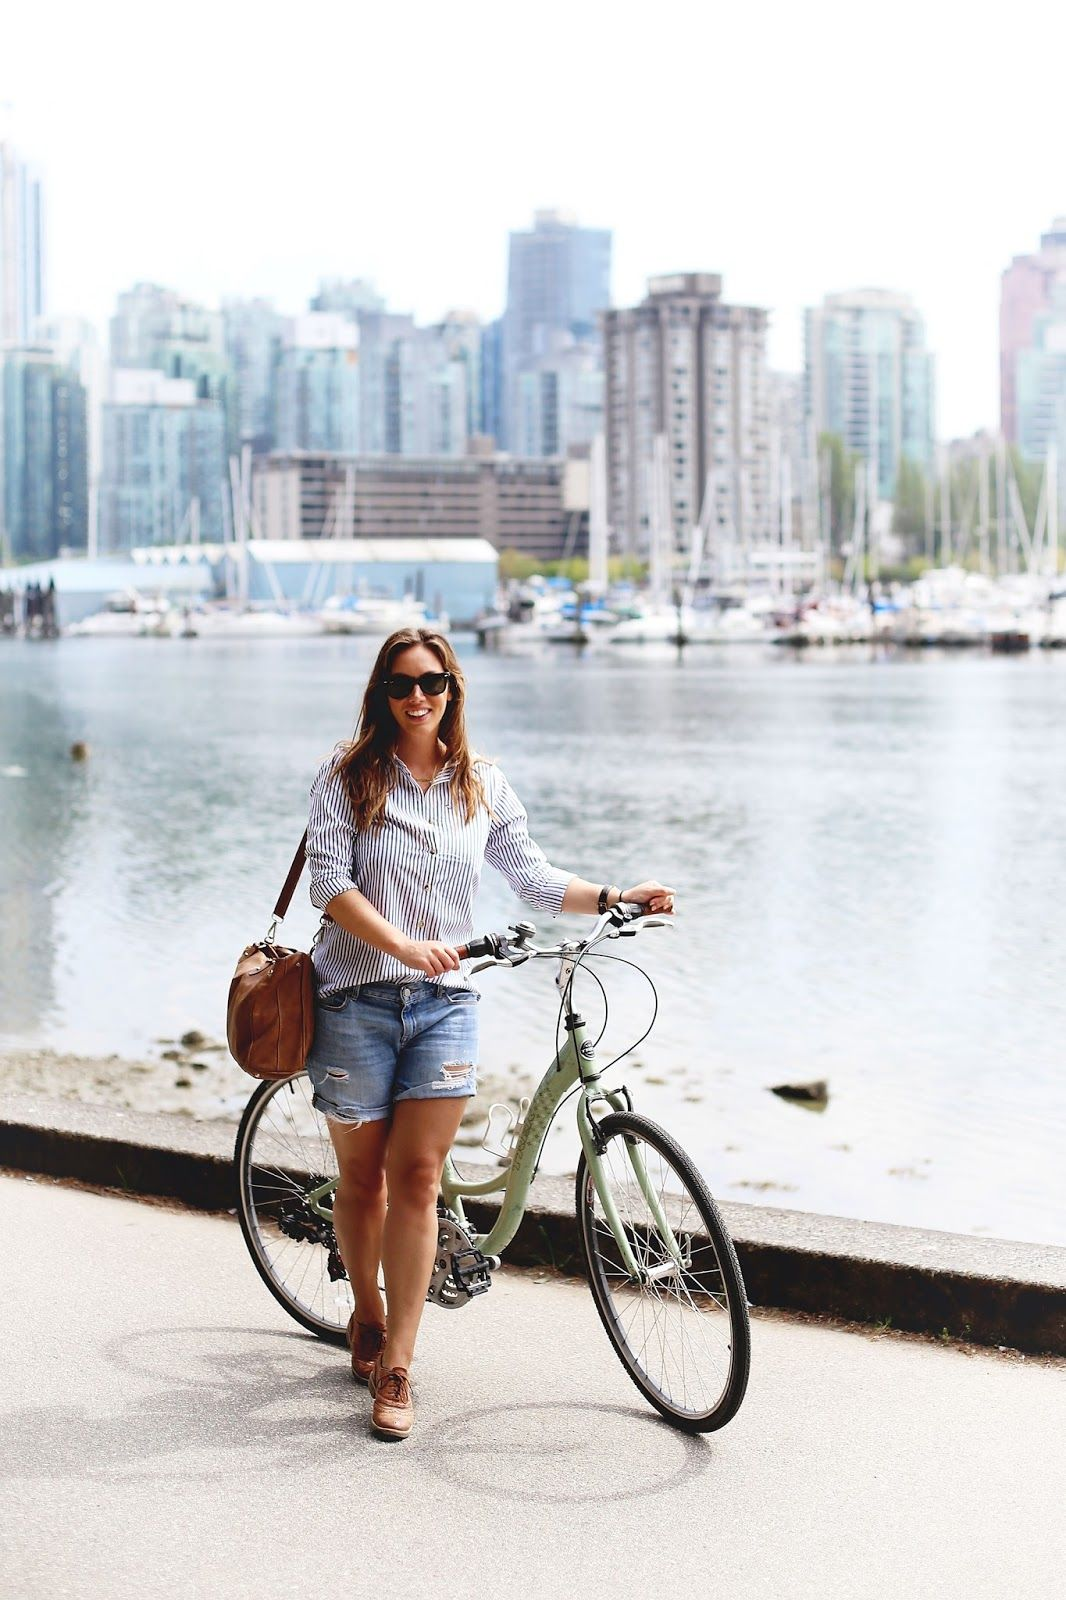 How to bike in style // Denim cut-off shorts, striped oxford shirt, cross-body bag, brogues. #style #fashion #bike #vancouver